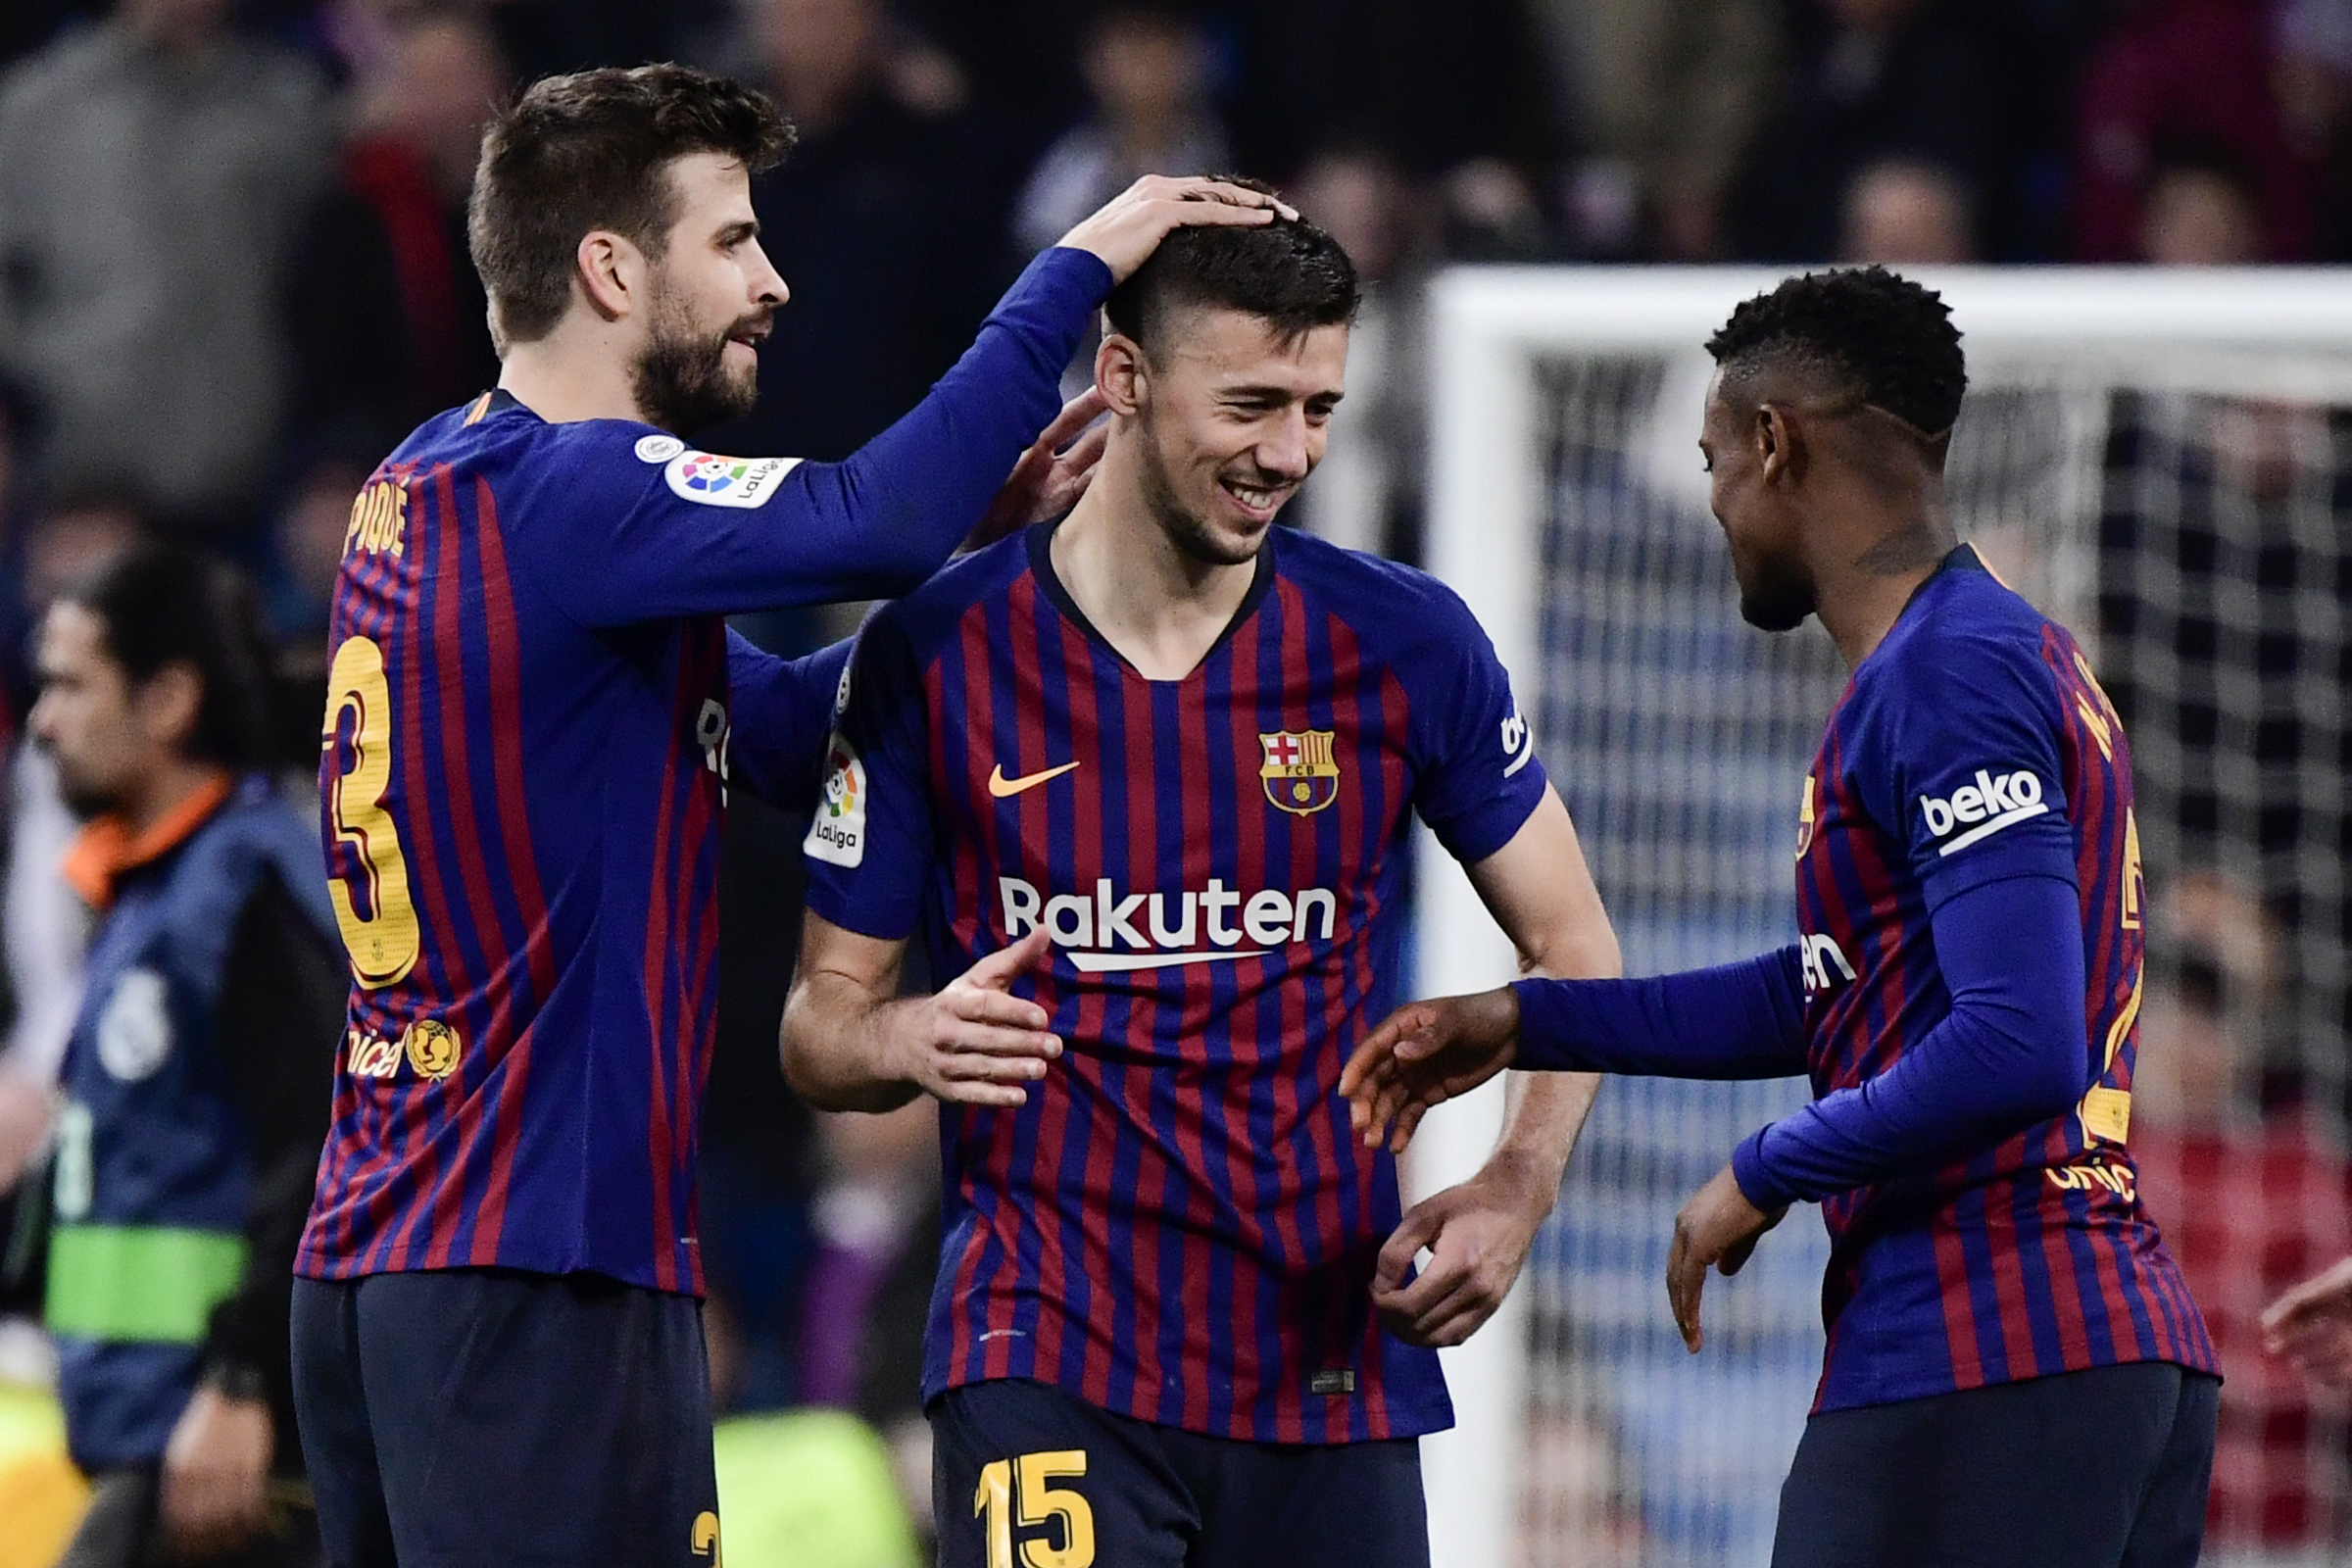 Barcelona unwilling to sanction Clement Lenglet's exit this summer (The French defender is seen celebrating in the picture.)